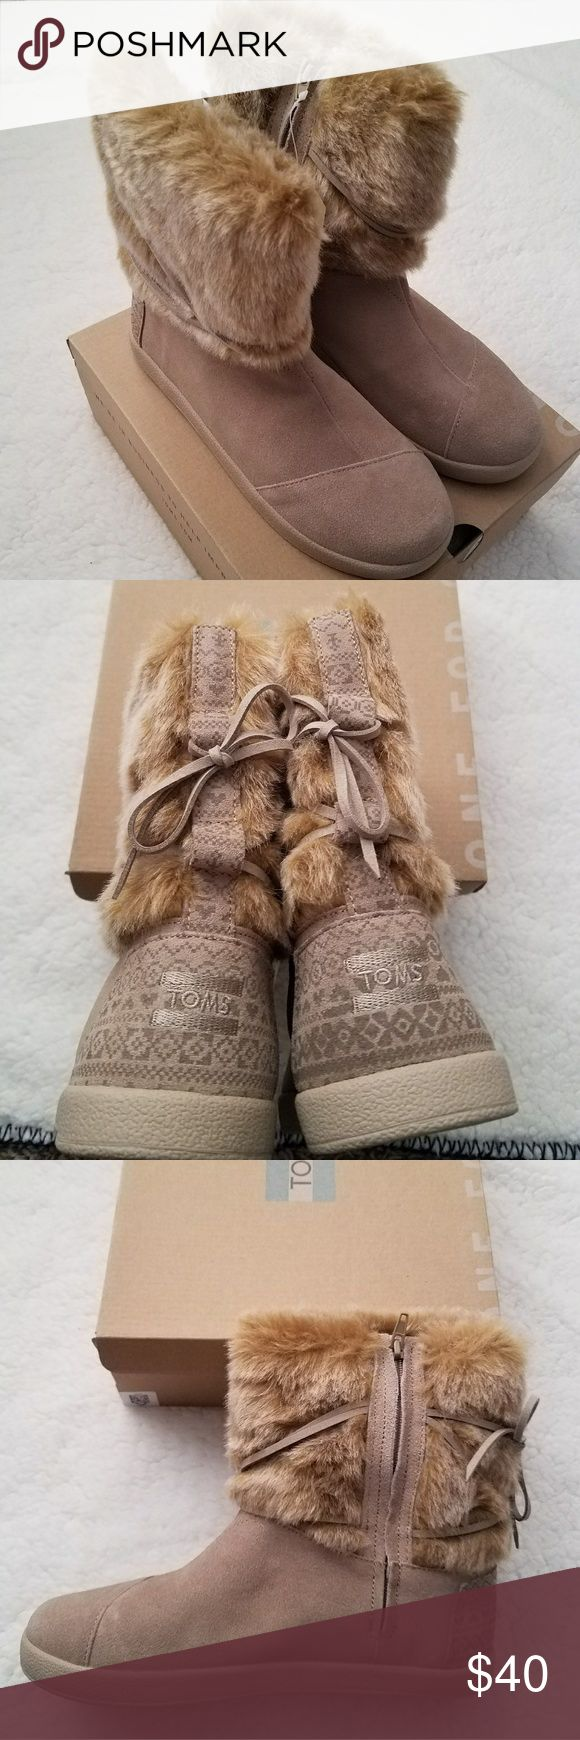 """TOMS Nepal youth boots TOMS Nepal suede faux fur boots  youth Size 5 Oxford tan  Zips up on sides Upper:Suede and faux fur Wrap around leather ties Lining:Faux shearling shaft; fabric foot Footbed:Fabric-covered Insole:Padded Sole:Treaded rubber Back Heel Height:Approx. 1/2""""H flat rubber sole unit Shaft:Approx. 7""""H with a 11"""" leg opening  New in box  retail $69 Toms Shoes Boots"""